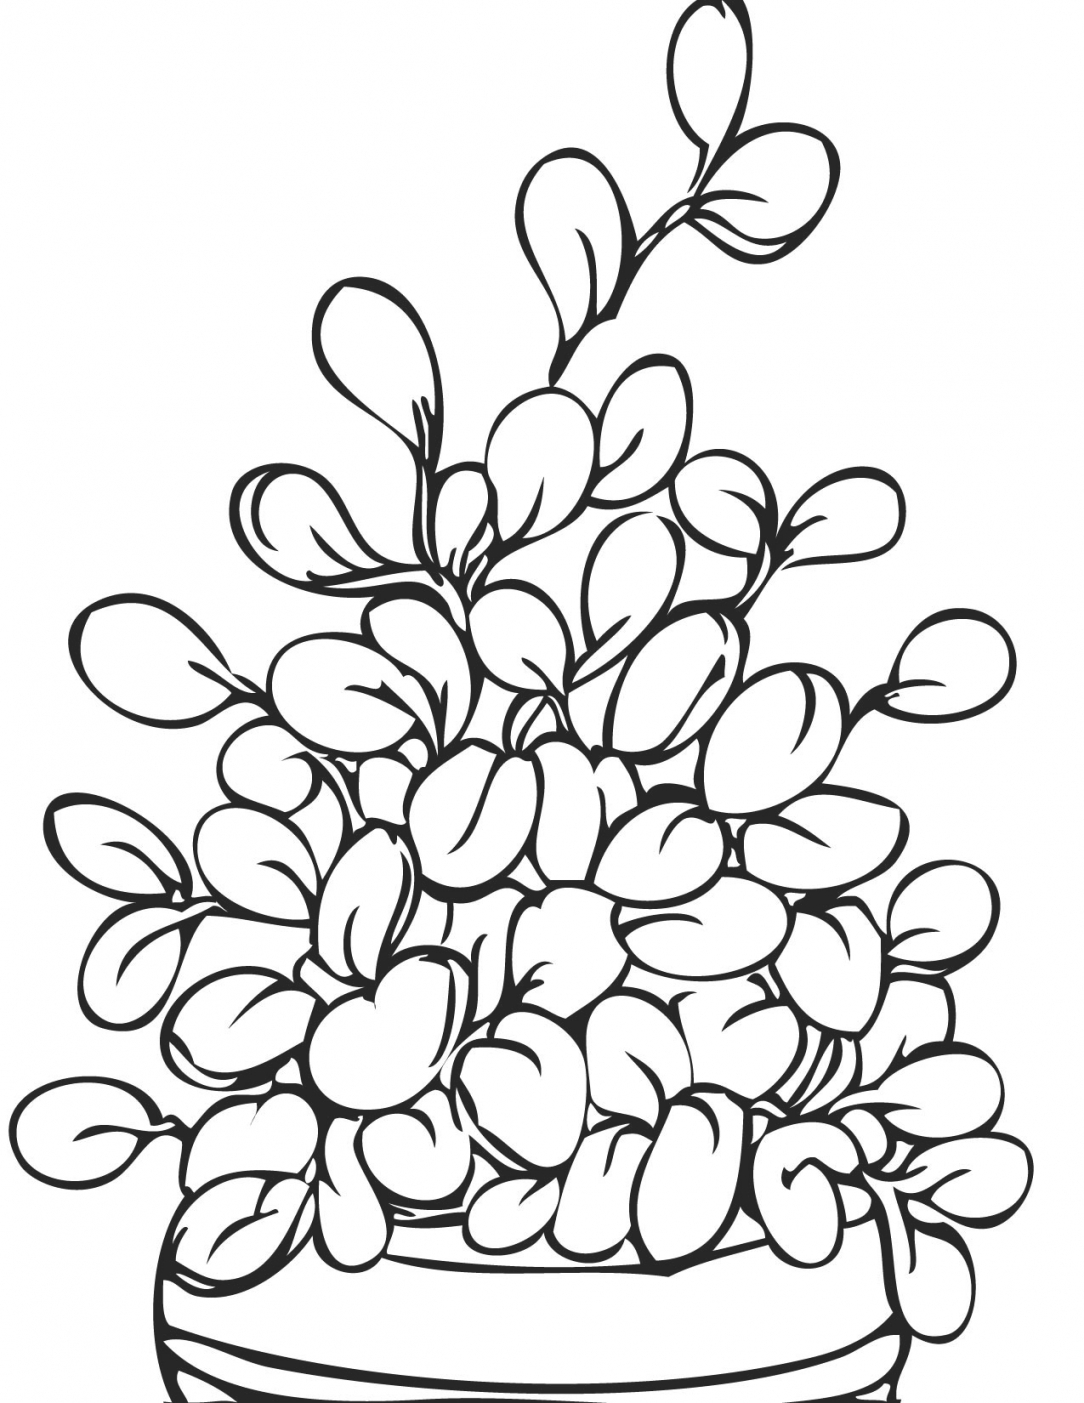 House Plant Drawing at GetDrawings.com | Free for personal use House ...